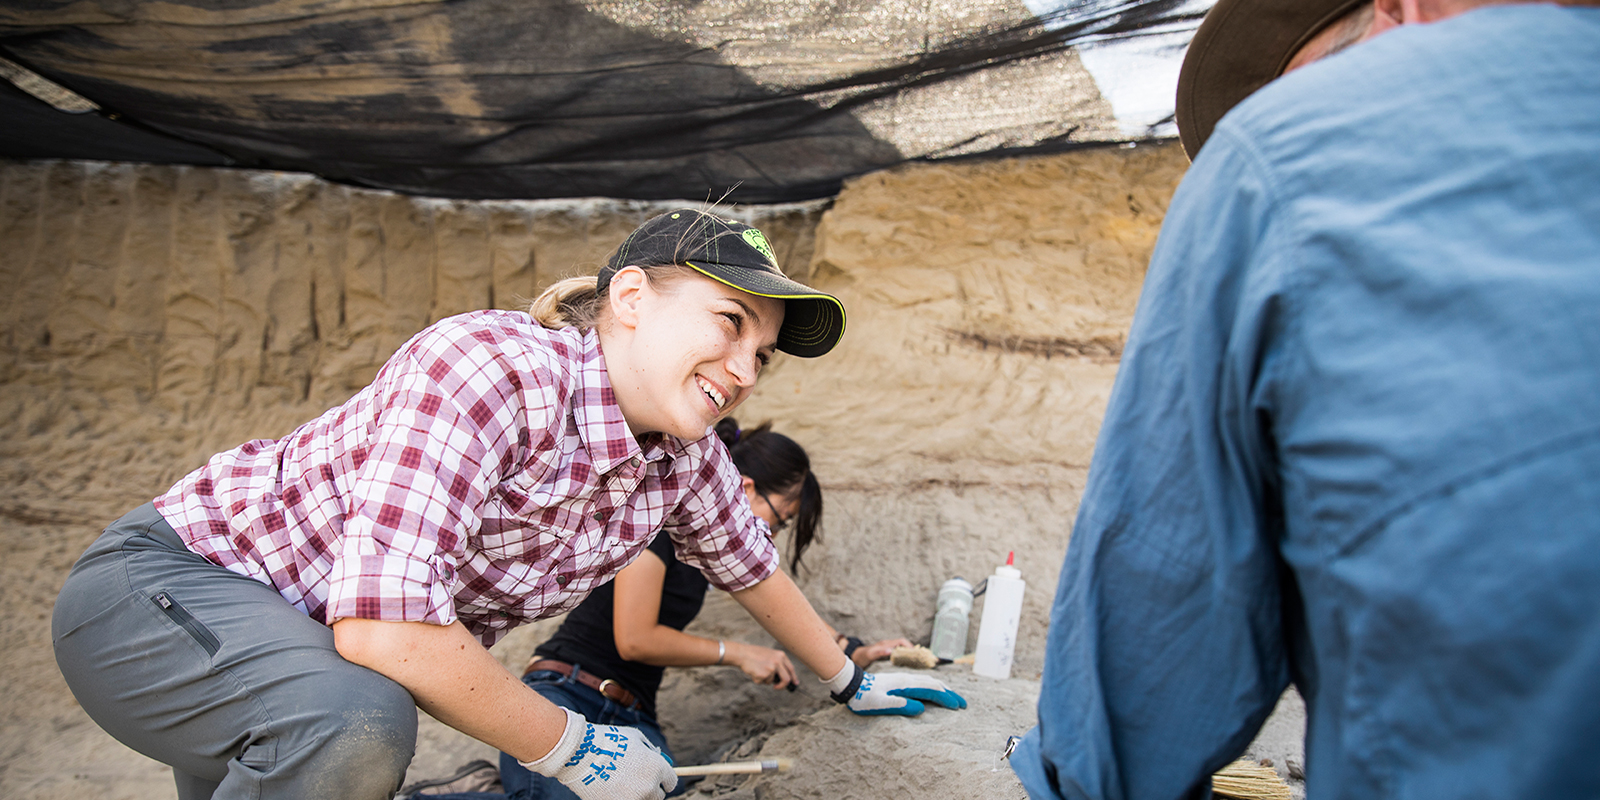 A woman in dirty working clothes smiling at another person under a canopy on a paleontology dig